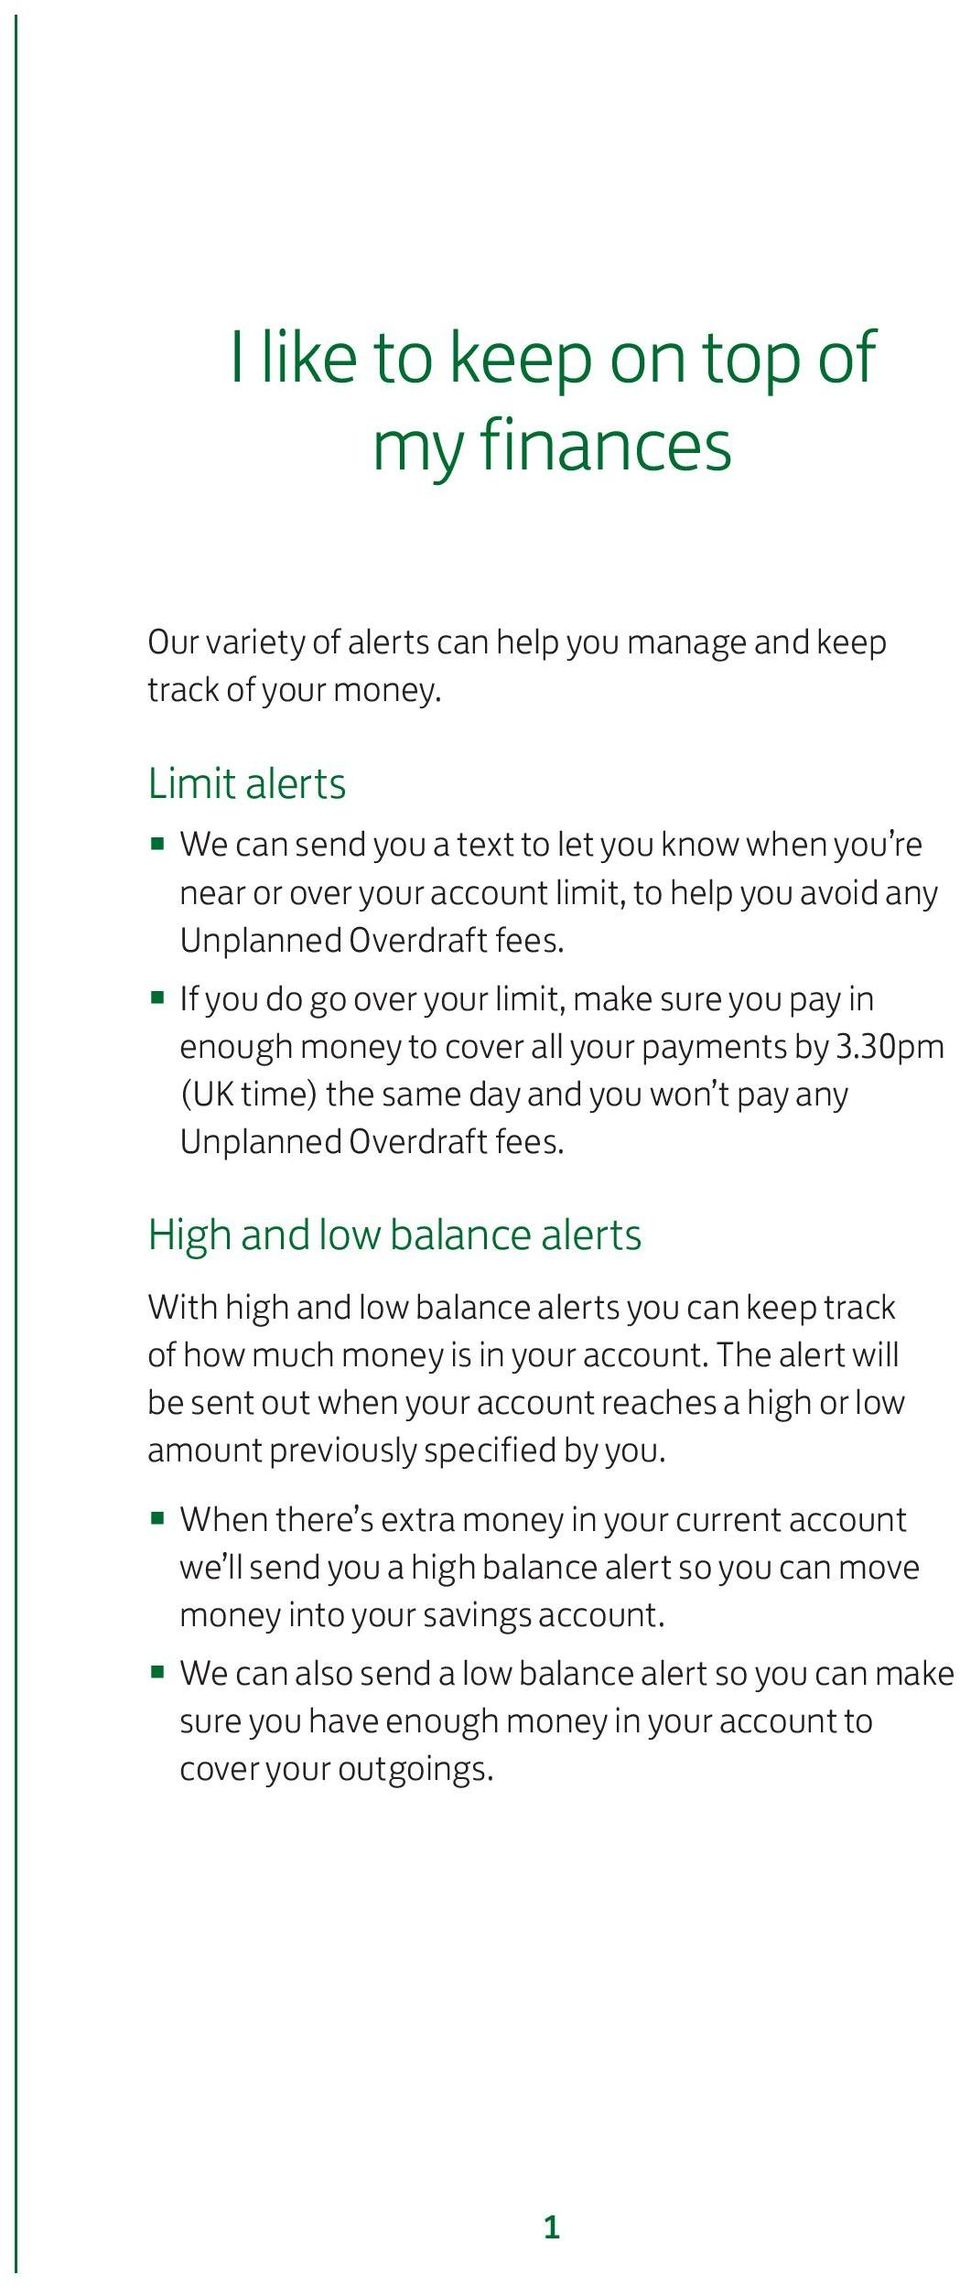 If you do go over your limit, make sure you pay in enough money to cover all your payments by 3.30pm (UK time) the same day and you won t pay any Unplanned Overdraft fees.